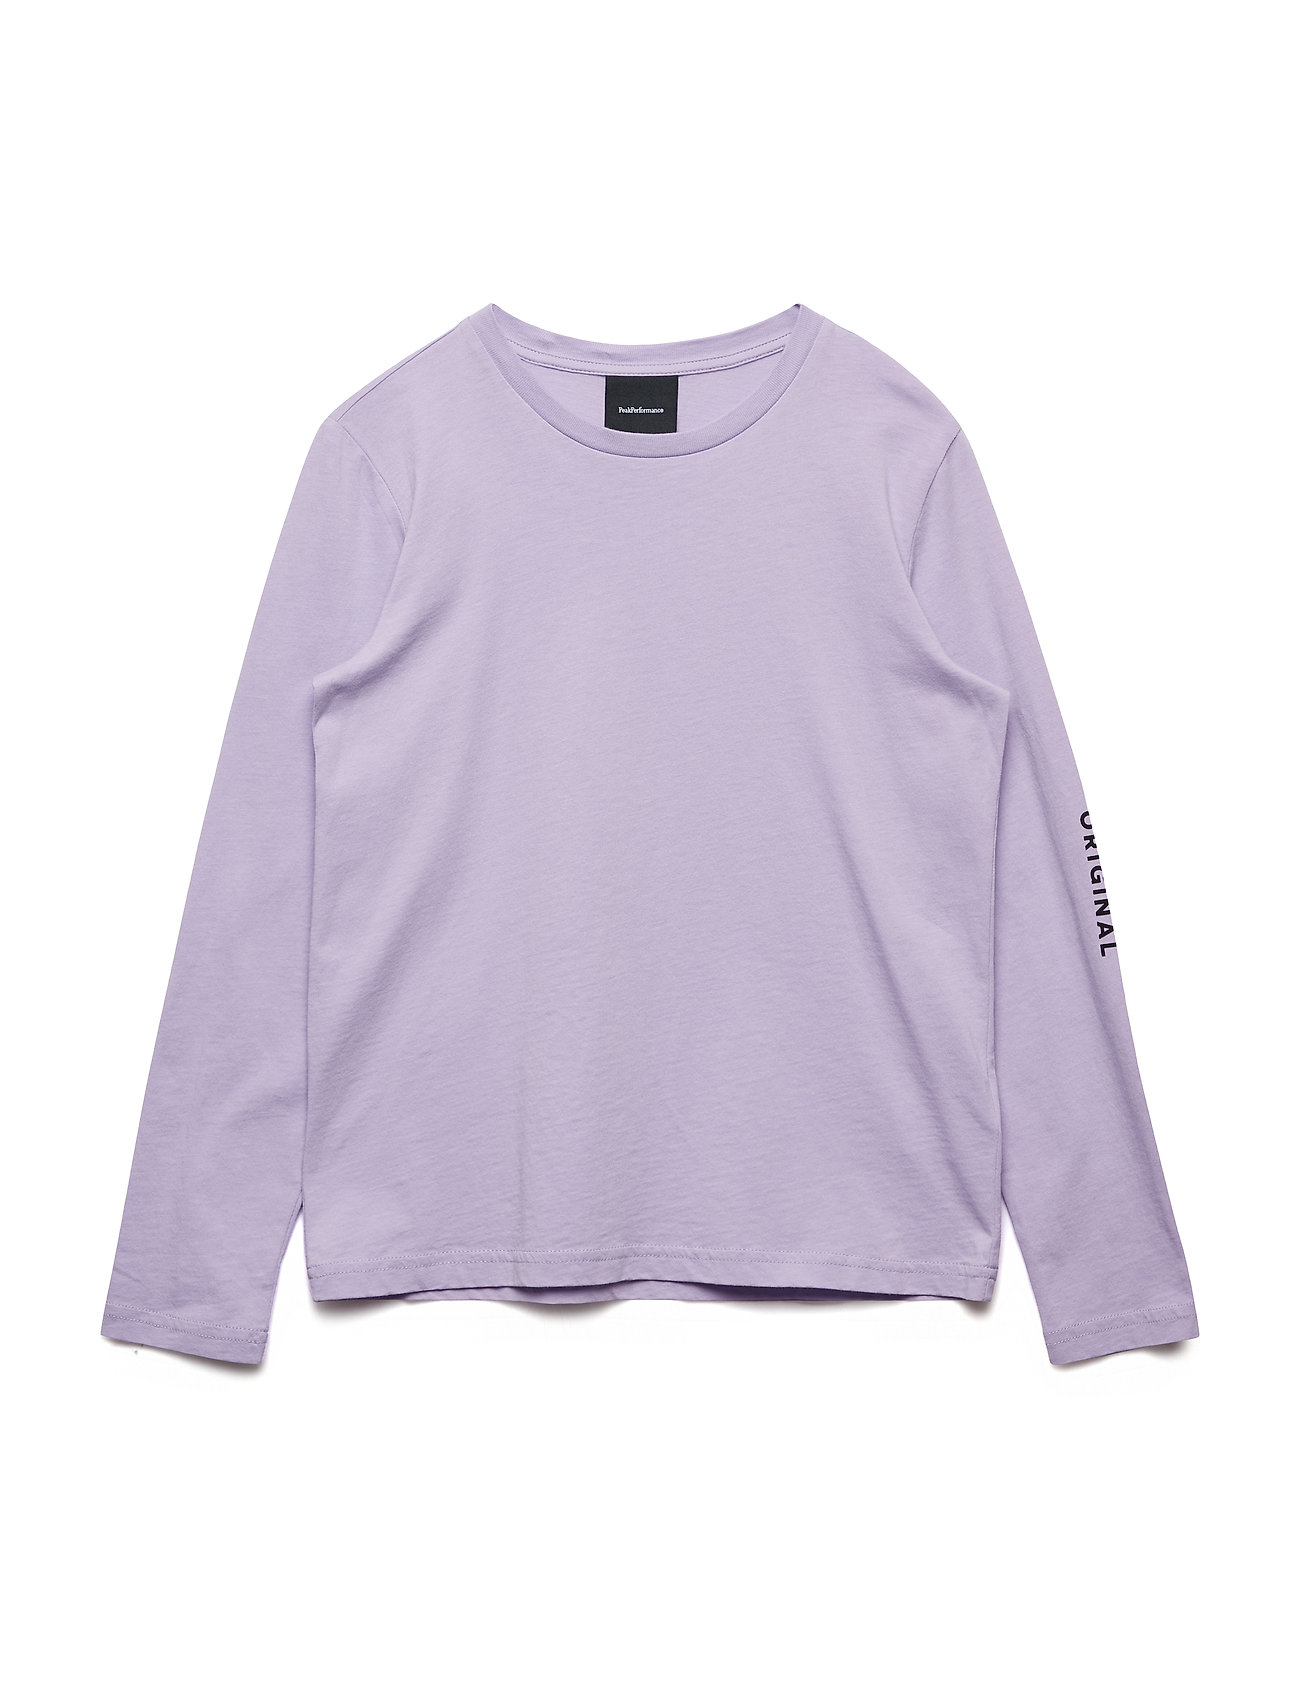 Peak Performance JR LOGO LS - LILAC BREEZE